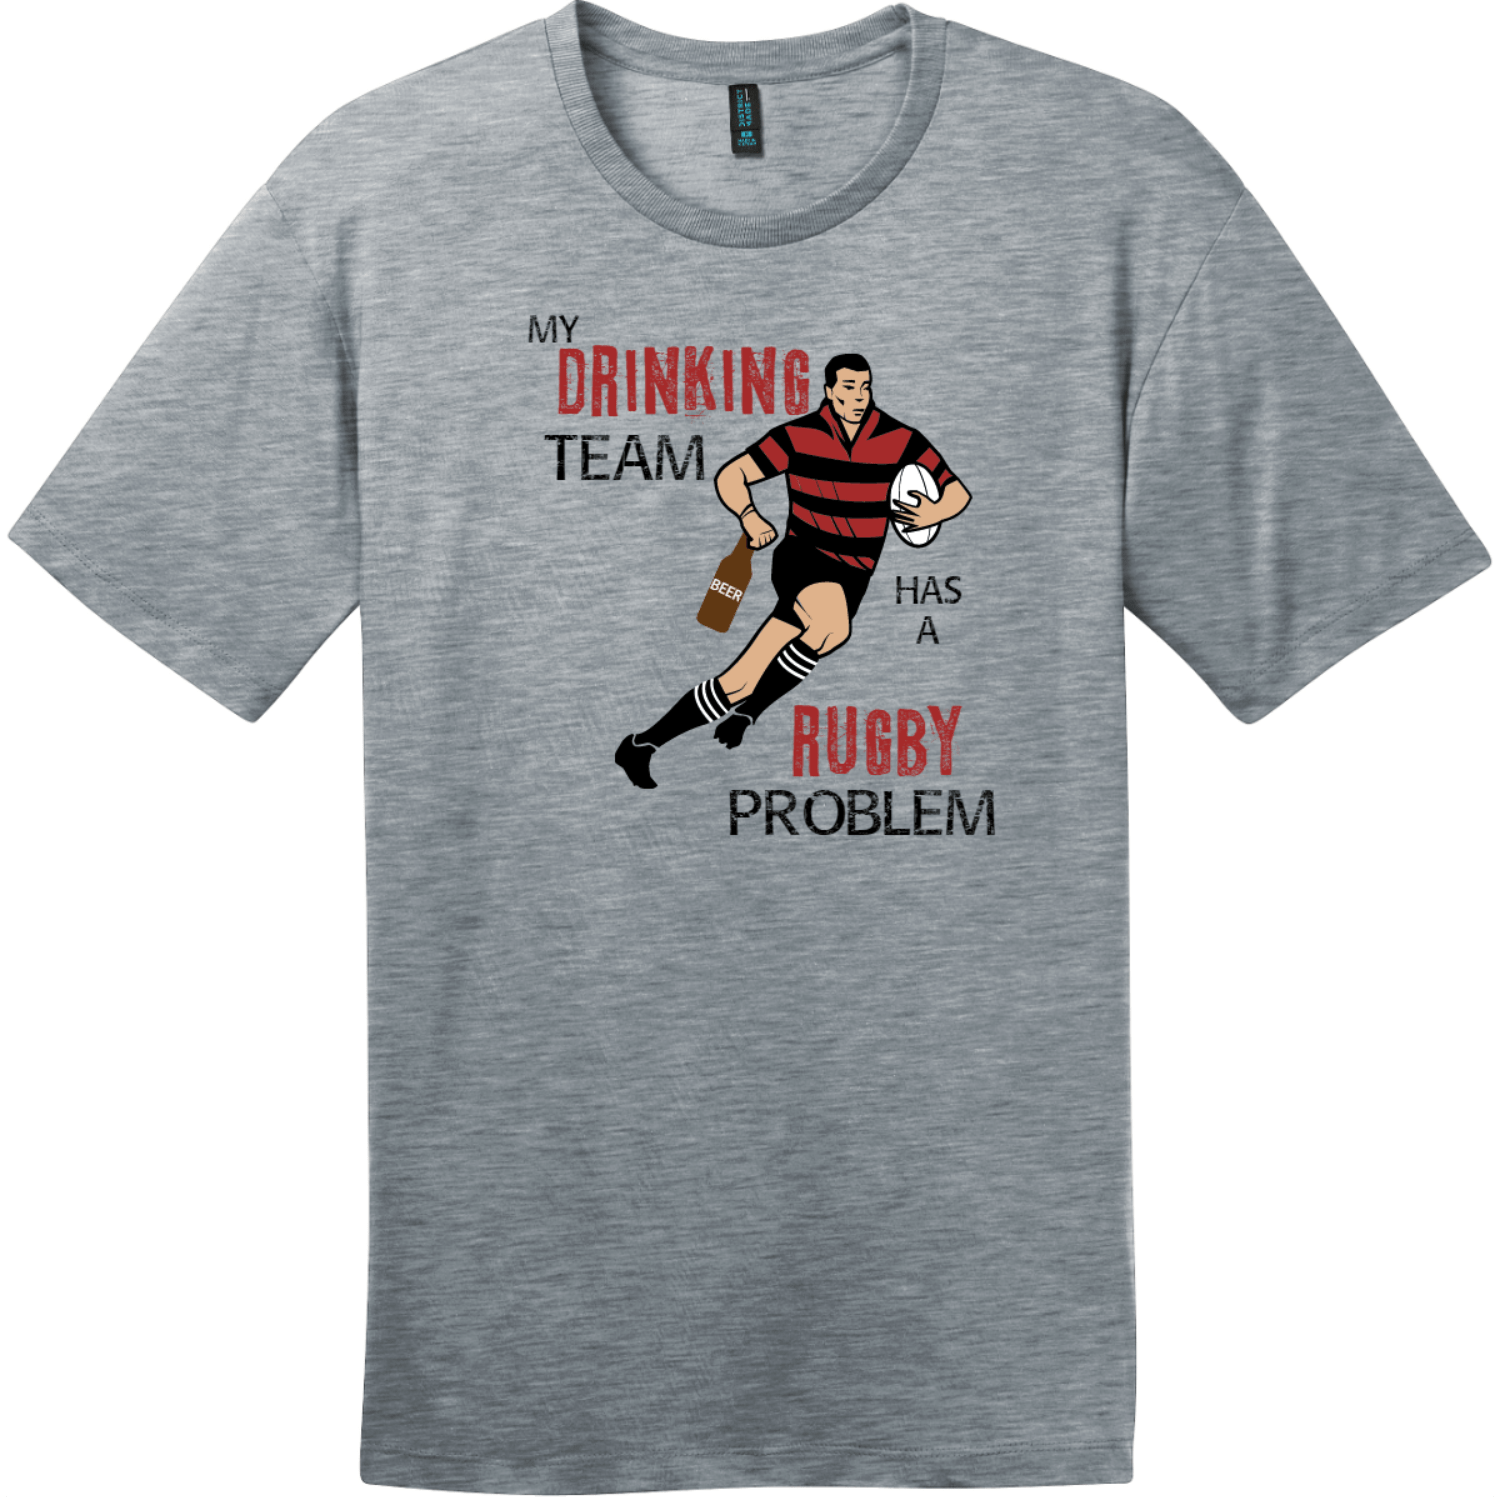 My Drinking Team Has A Rugby Problem T-Shirt Heathered Steel District Perfect Weight Tee DT104